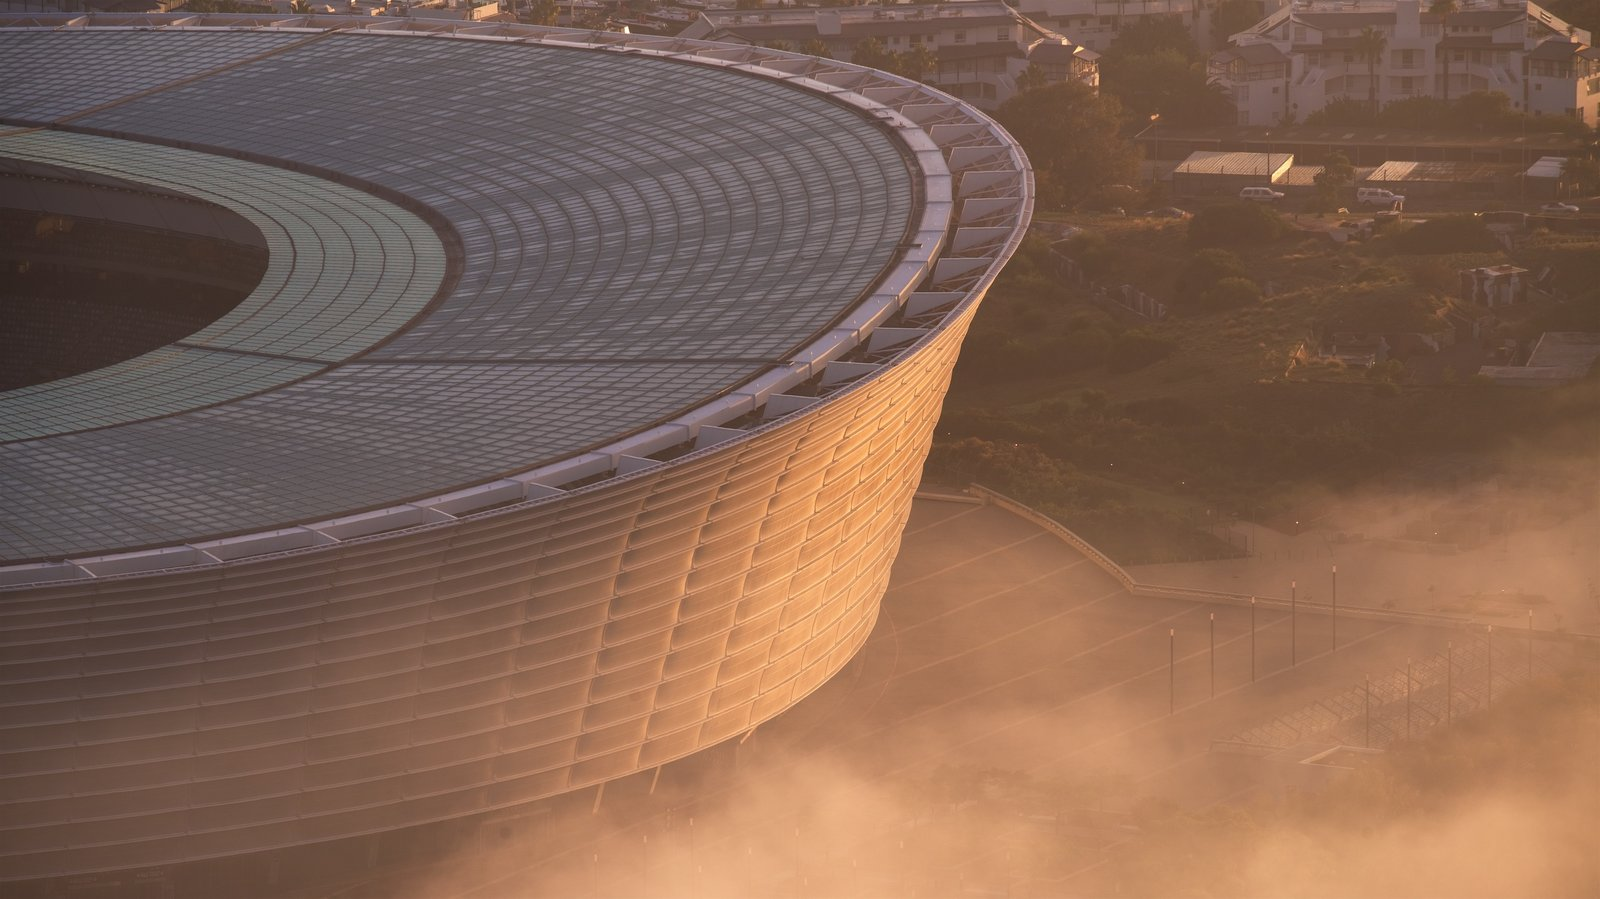 Cape Town Stadium which includes a city and a sunset